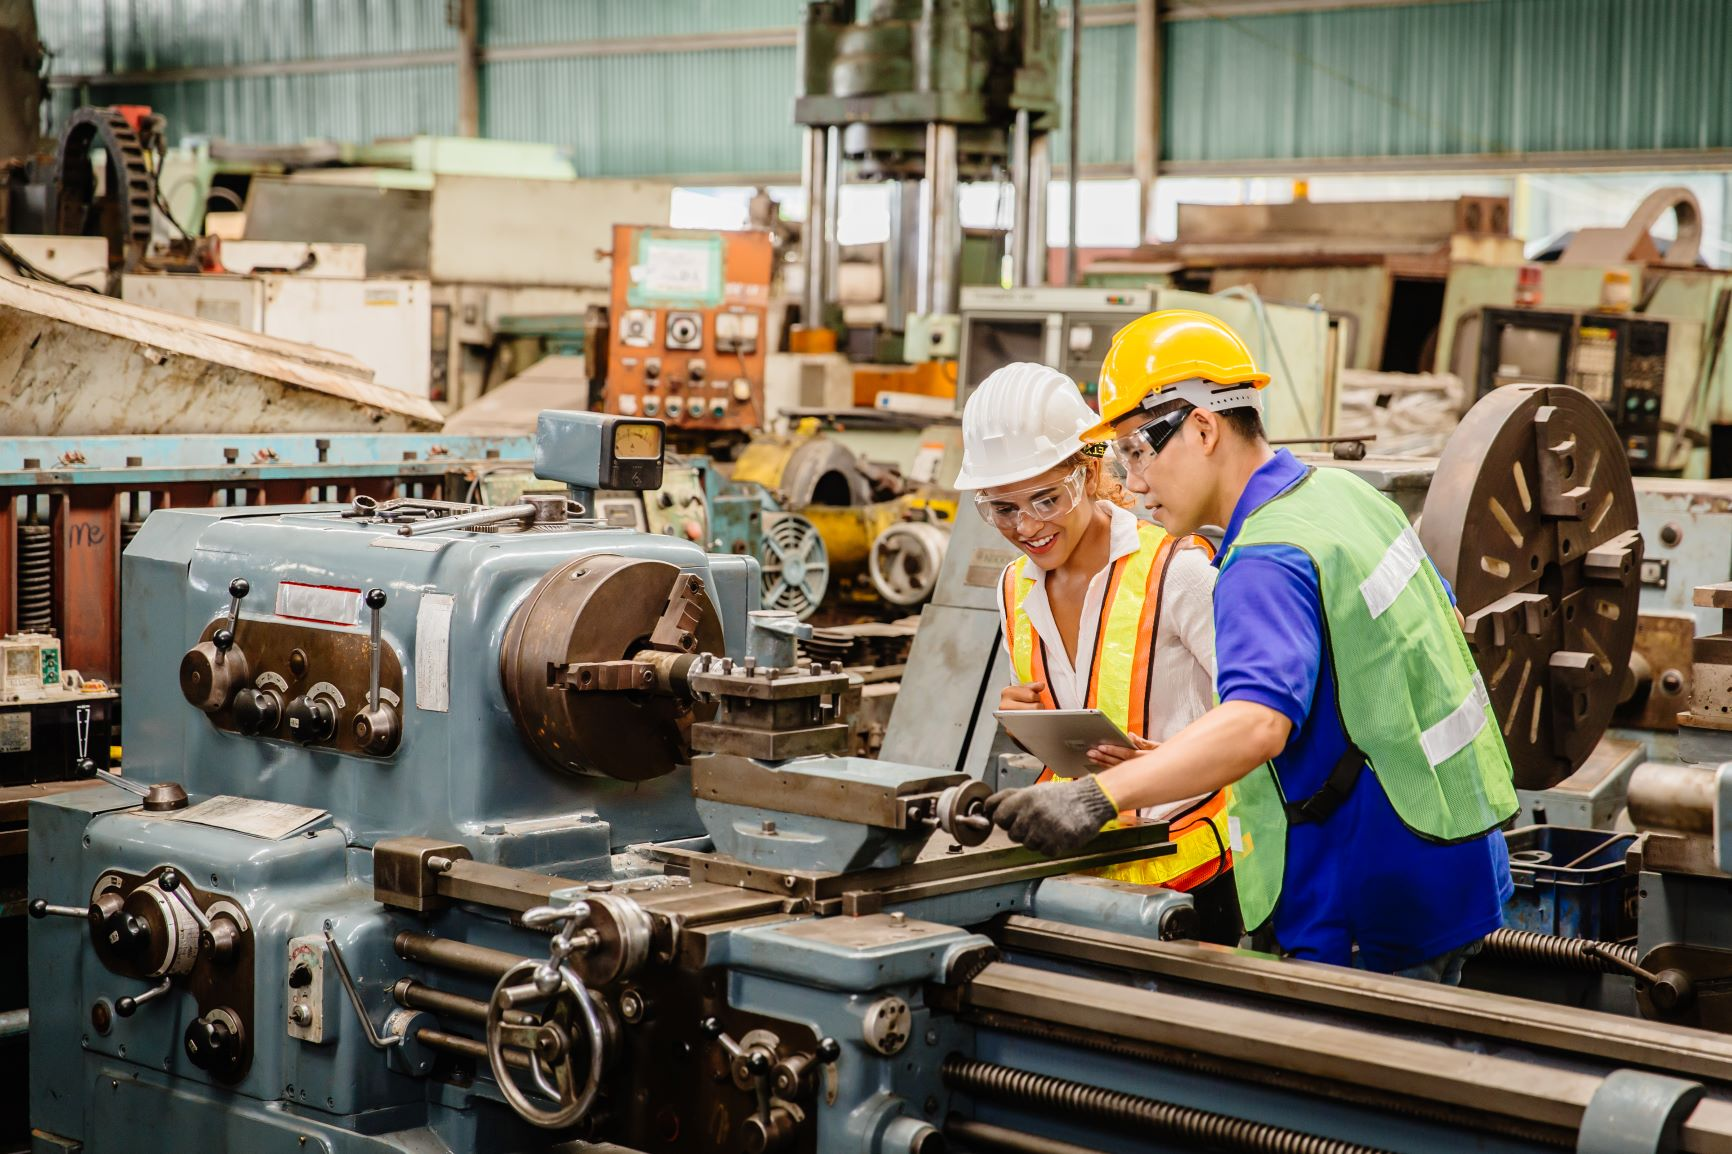 Photo of factory workers making rail crossing equipment